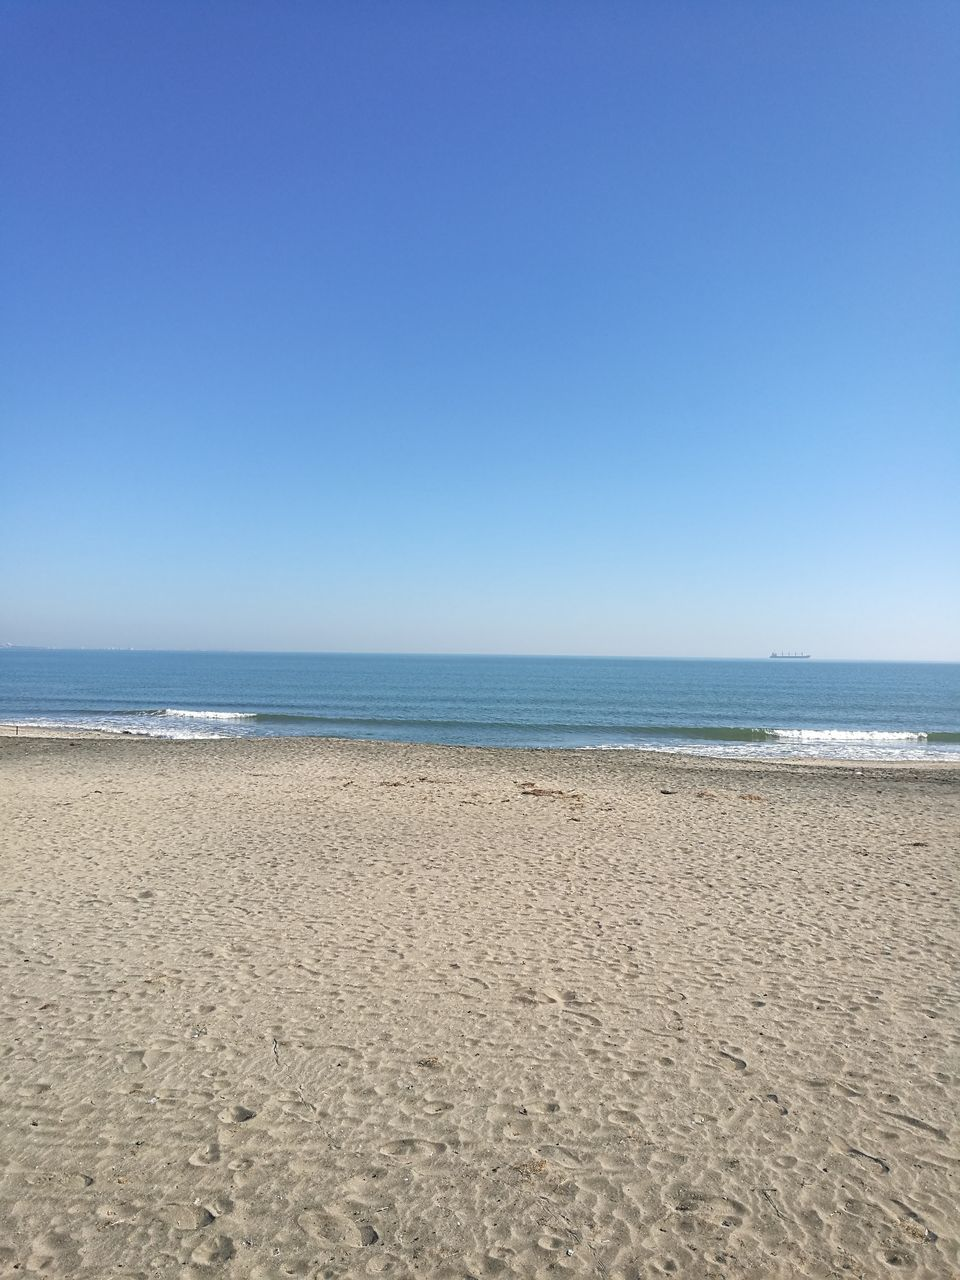 beach, sand, sea, horizon over water, nature, shore, water, tranquility, copy space, scenics, tranquil scene, clear sky, beauty in nature, day, outdoors, blue, no people, summer, vacations, sky